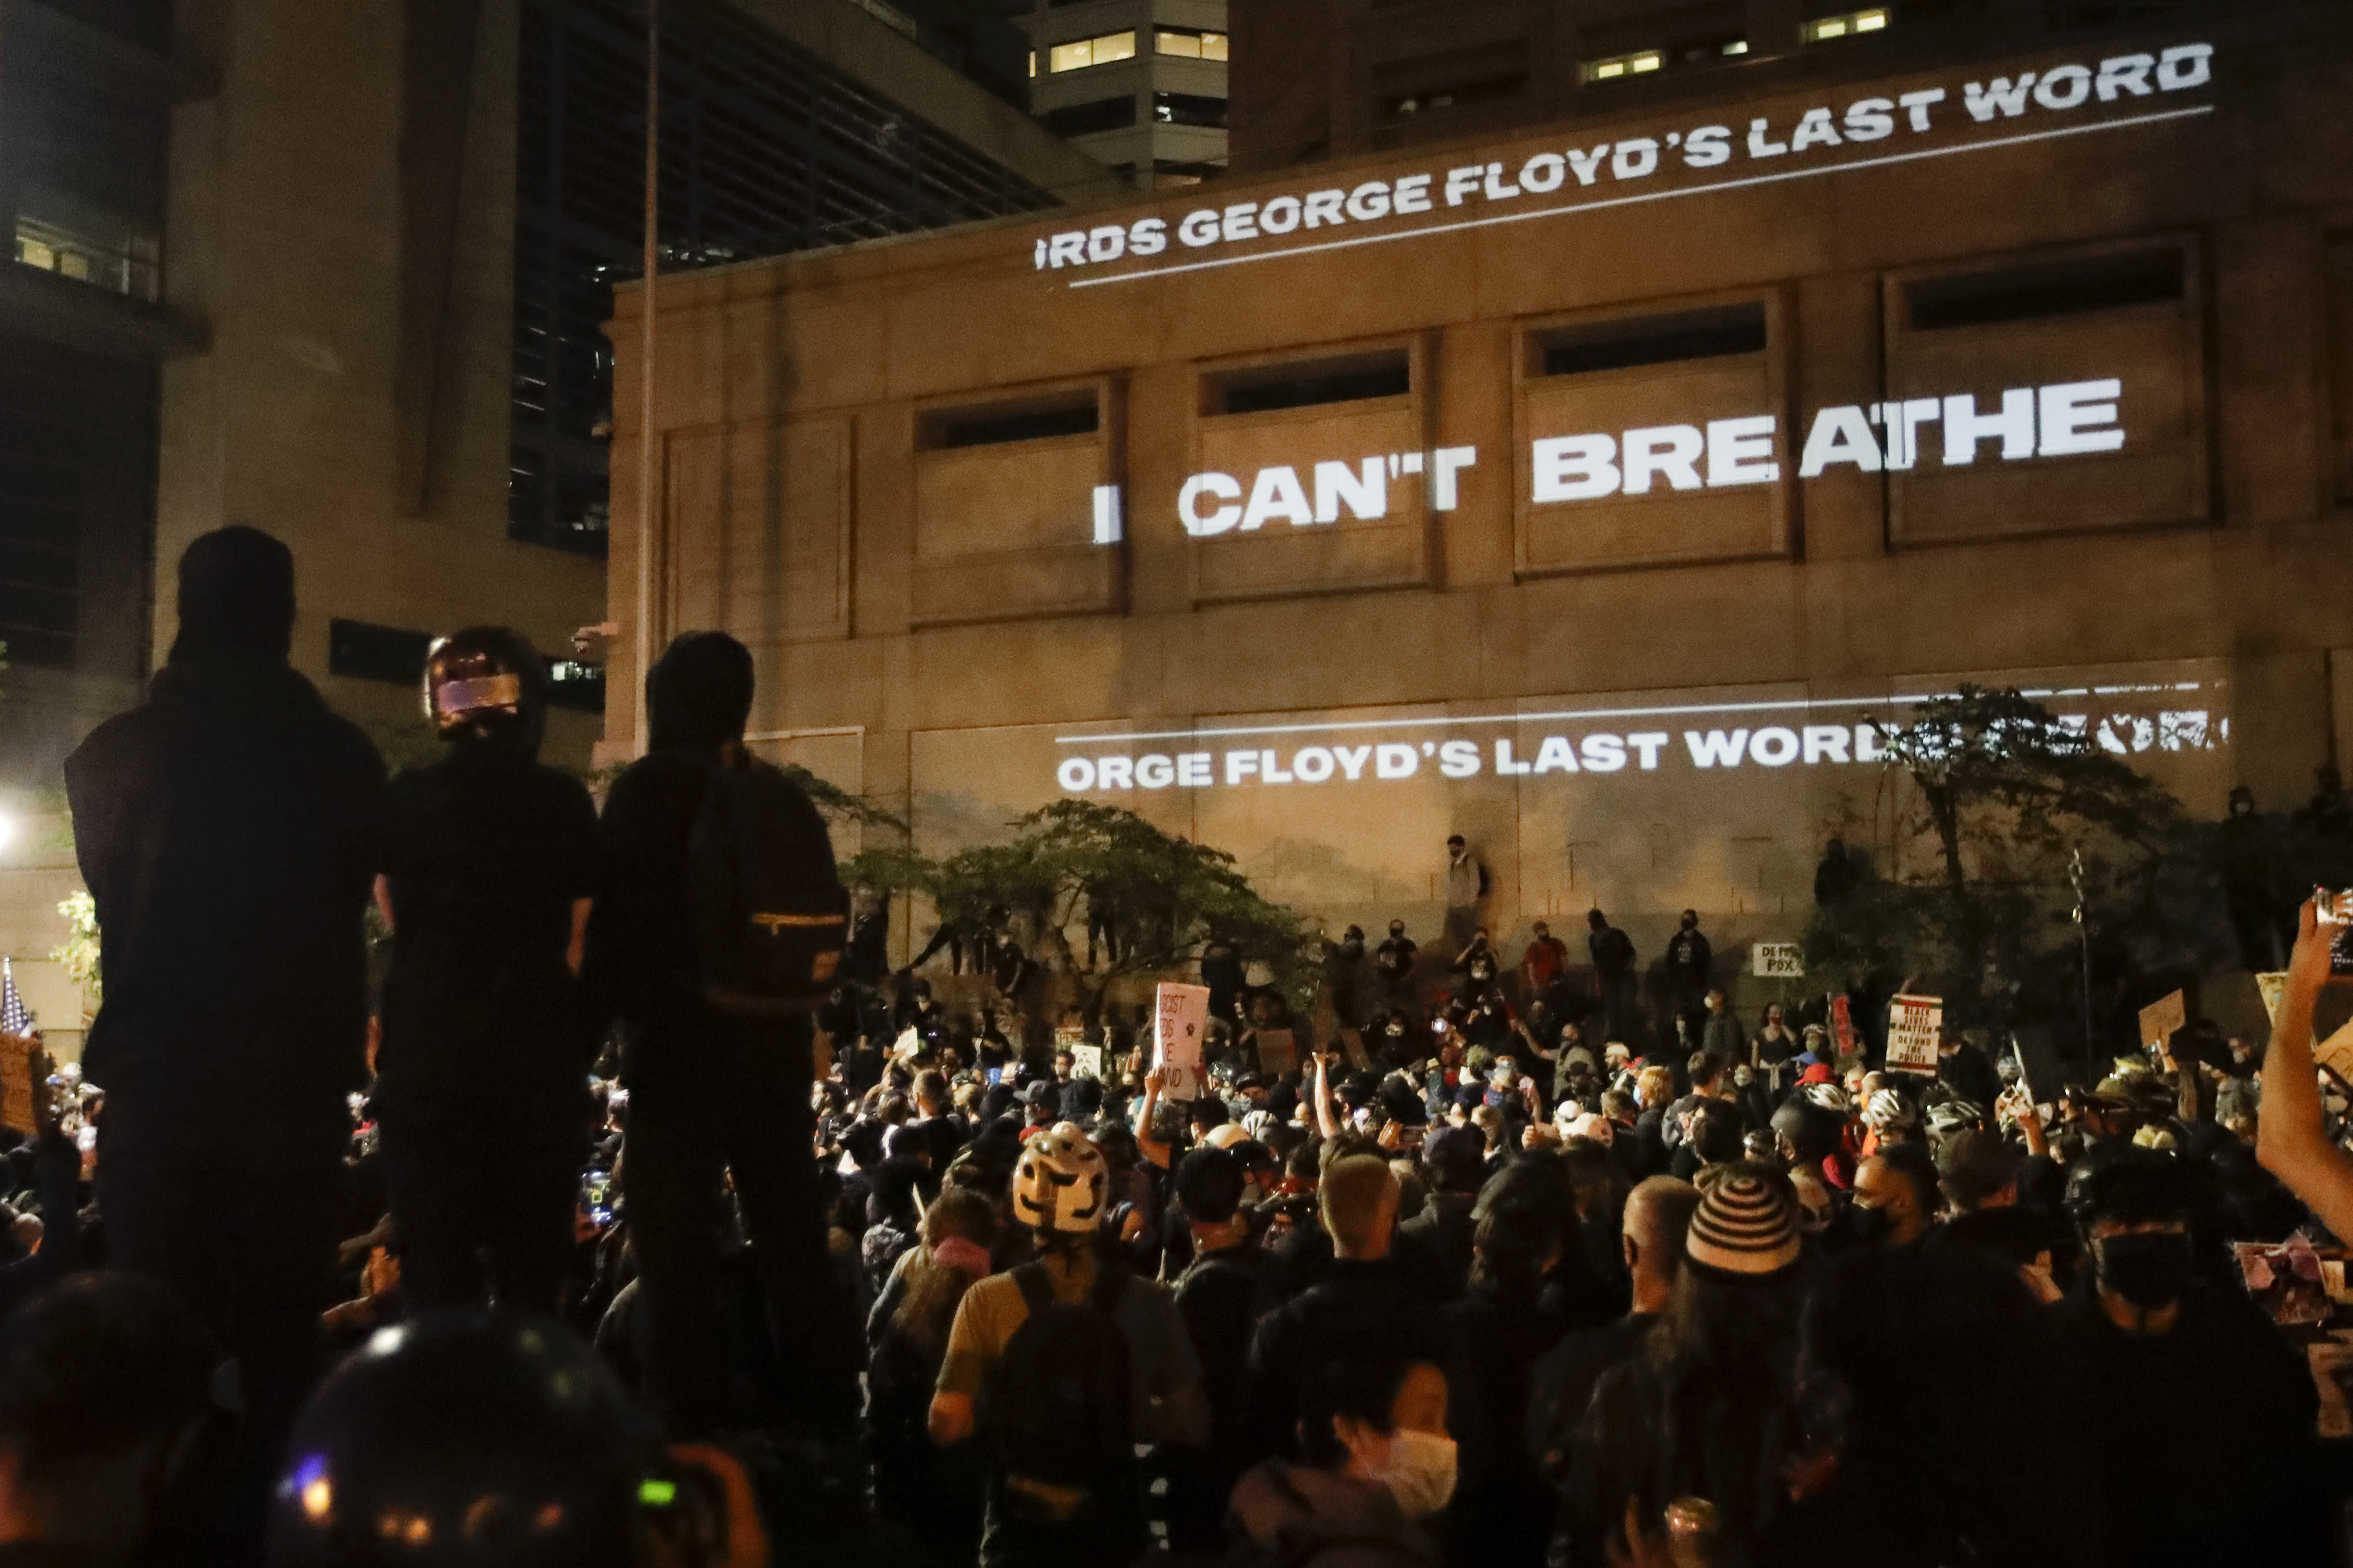 """FILE - In this Saturday, July 25, 2020, file photo, the words """"I can't breathe"""" are flashed on a wall during a Black Lives Matter protest in Portland, Ore. State legislatures across the U.S. are pushing an array of policing reforms after the demonstrations related to the death of George Floyd last spring, from banning chokeholds to making it easier to hold officers legally accountable for their actions. (AP Photo/Marcio Jose Sanchez, File)"""